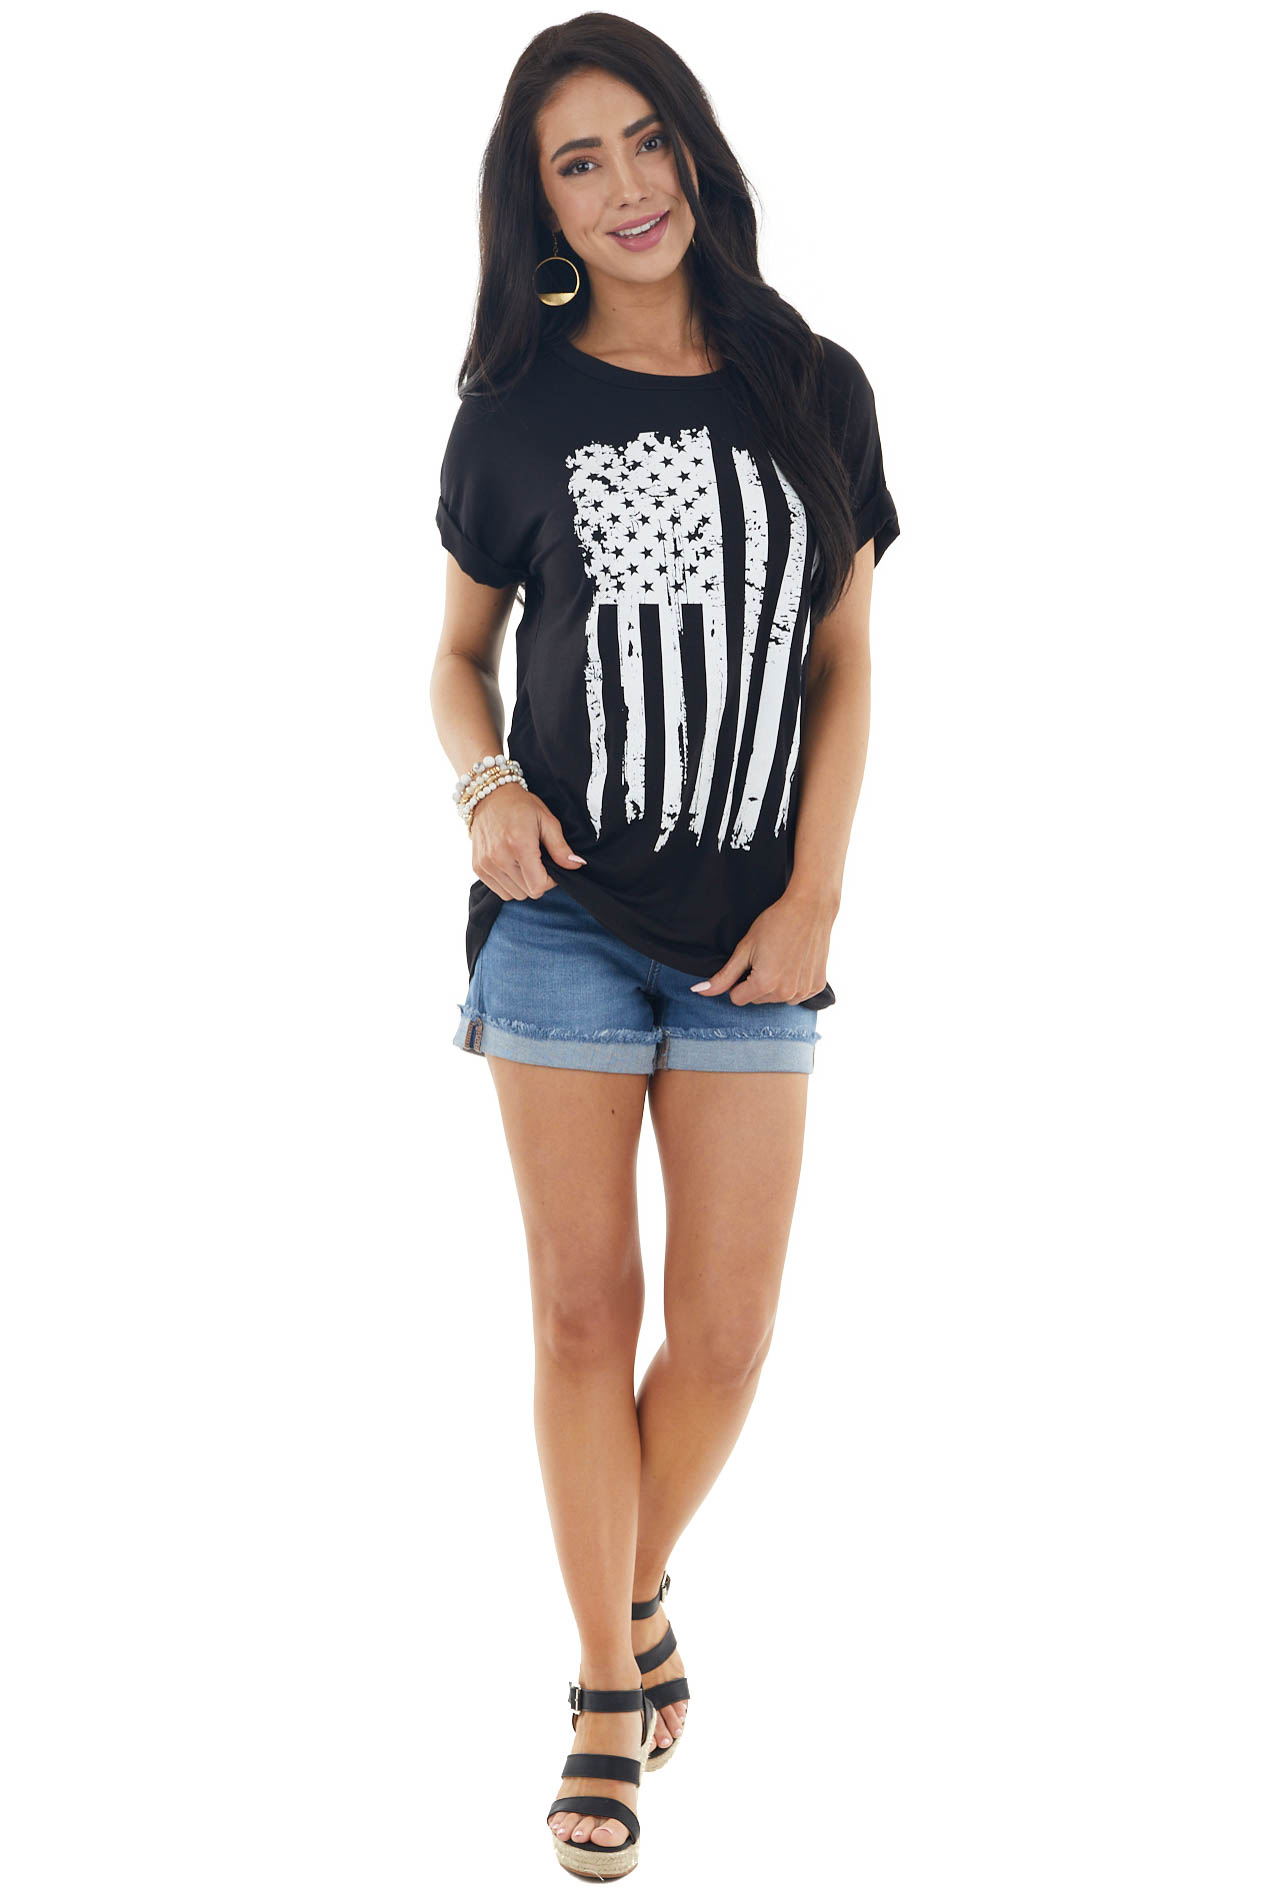 Black Short Sleeve Knit Top with American Flag Graphic